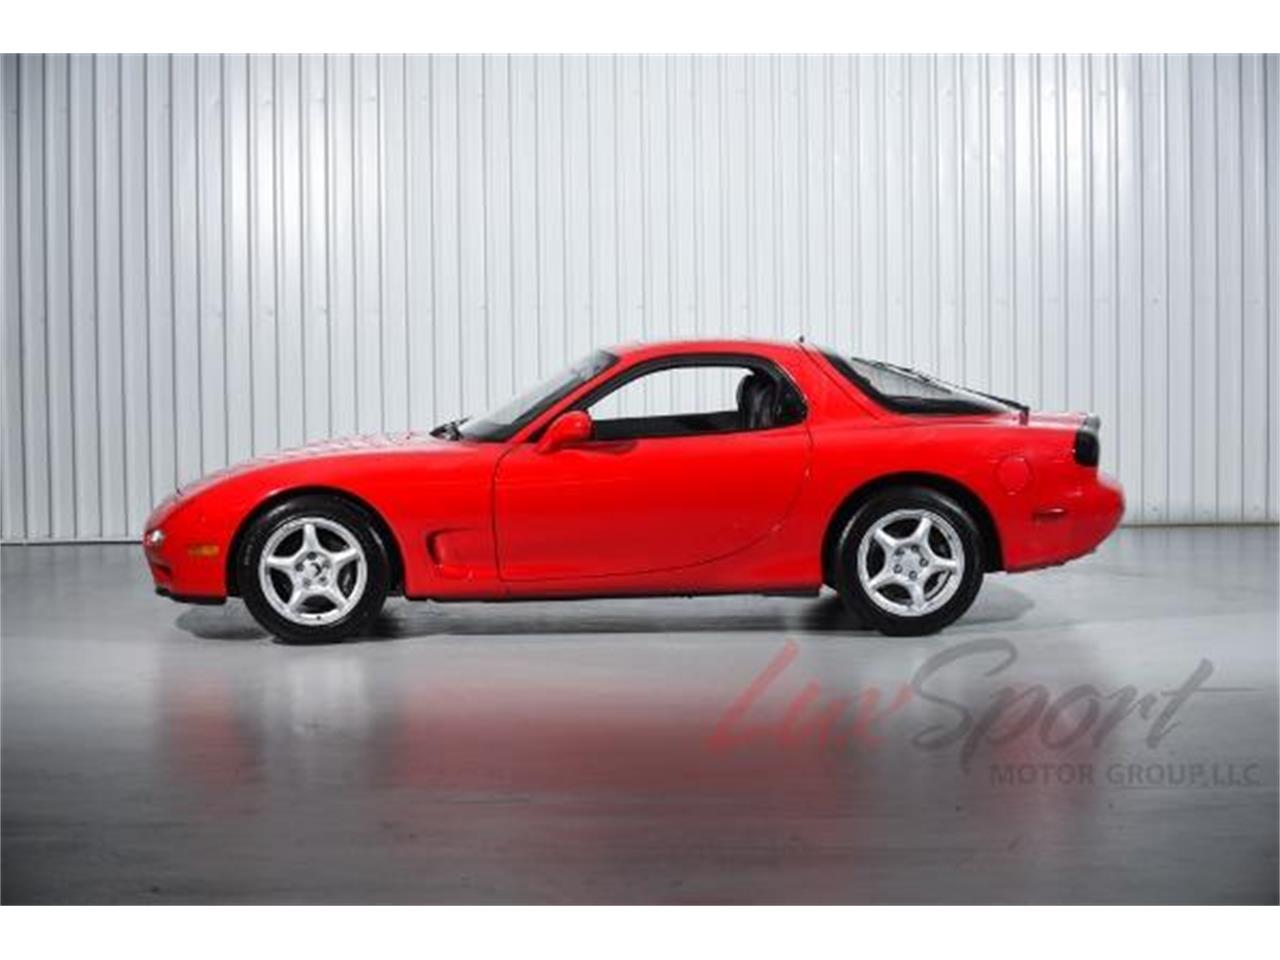 Large Picture of 1993 Mazda RX-7 located in New Hyde Park New York - $34,995.00 Offered by LuxSport Motor Group, LLC - MO02